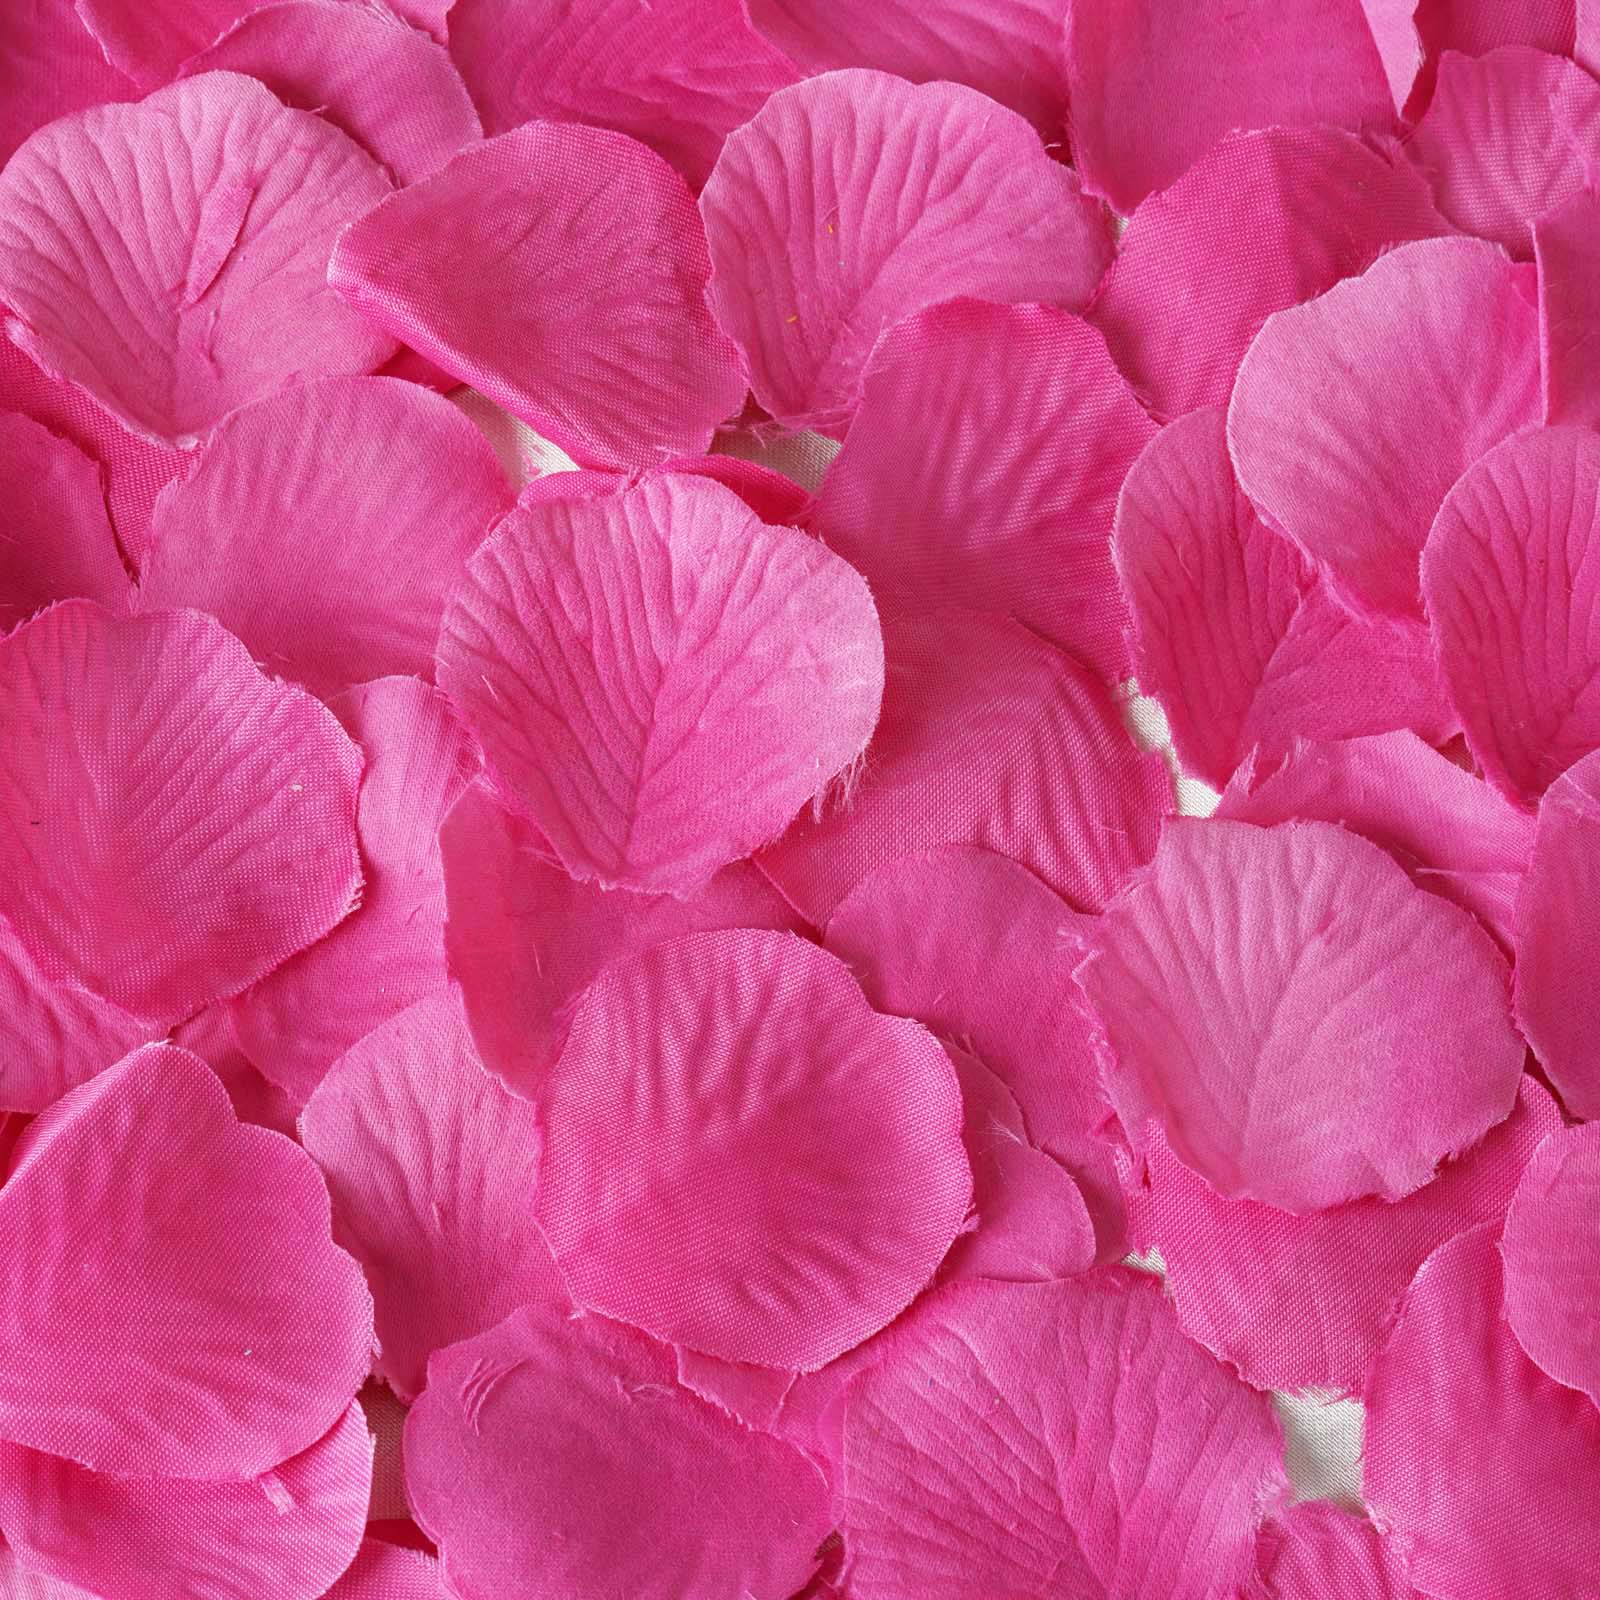 2000 Silk Rose Petals Wedding Favors Wholesale Cheap Decorations ...